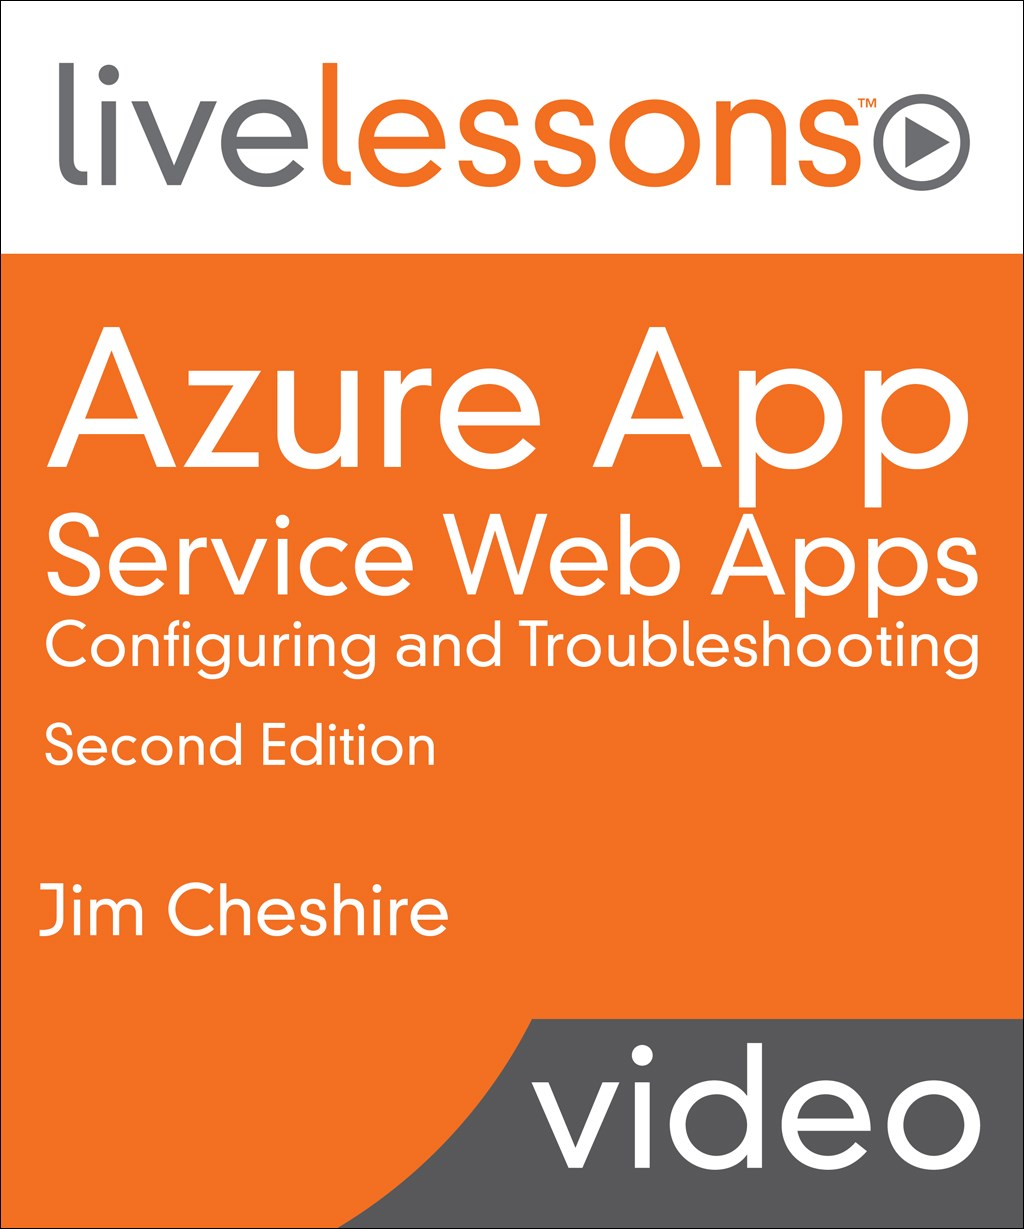 Azure App Service Web Apps: Configuring and Troubleshooting LiveLessons (Video Training), Downloadable Video, 2nd Edition